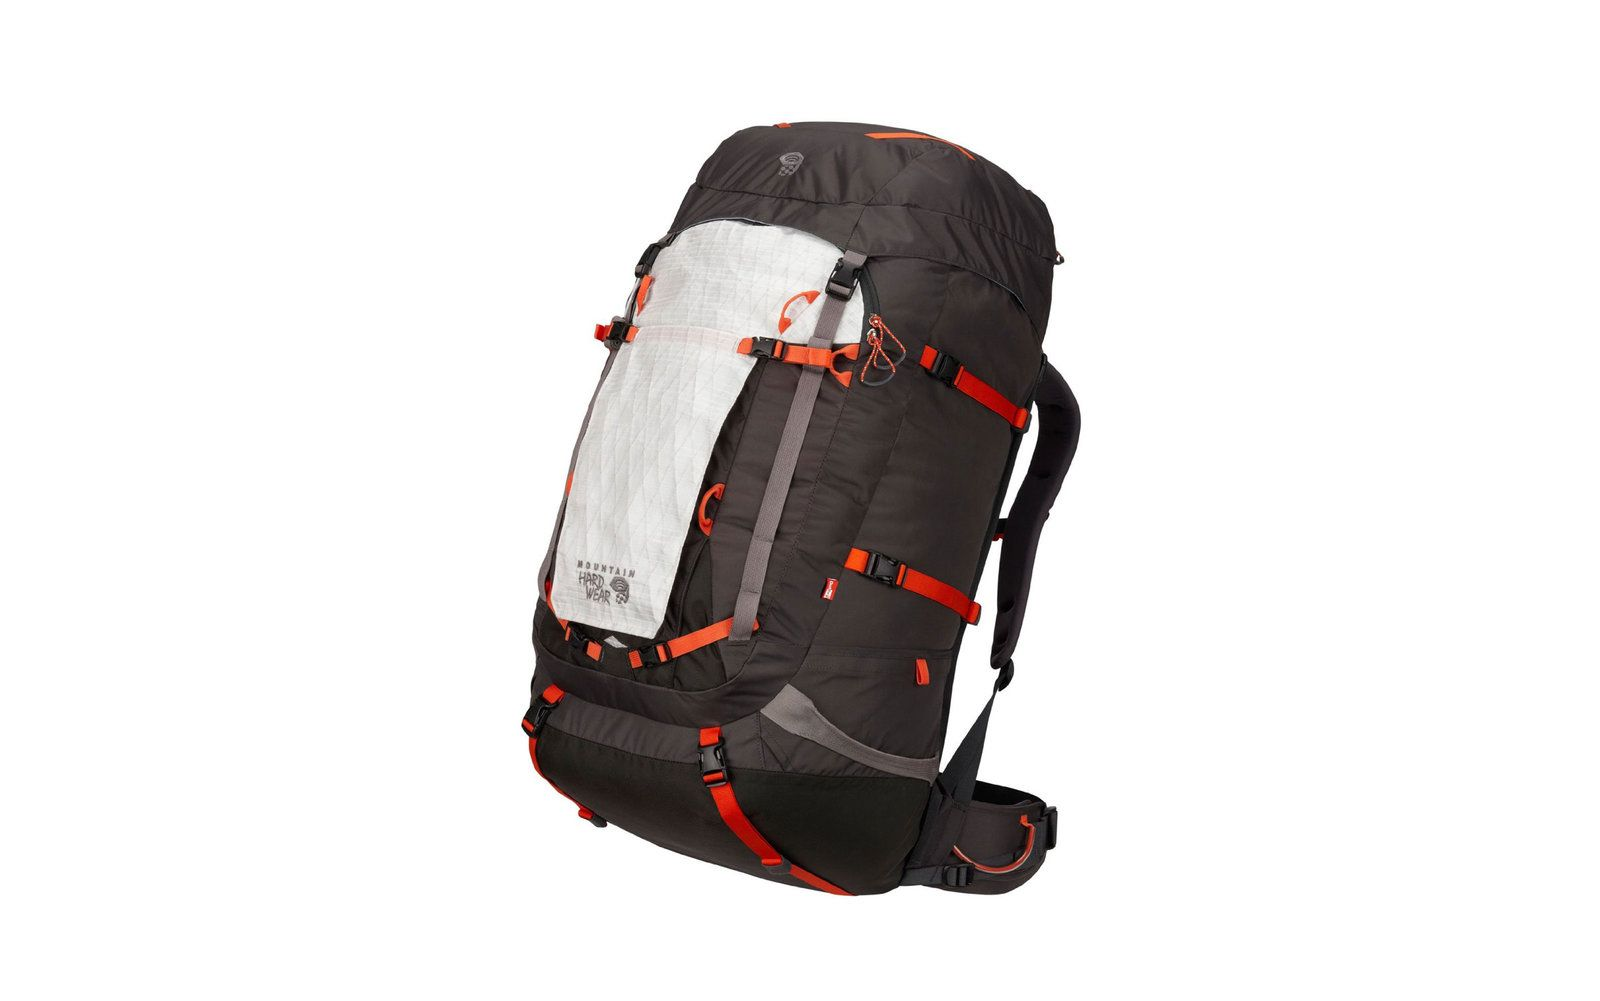 The 15 Best Hiking Backpacks to Take on the Trail